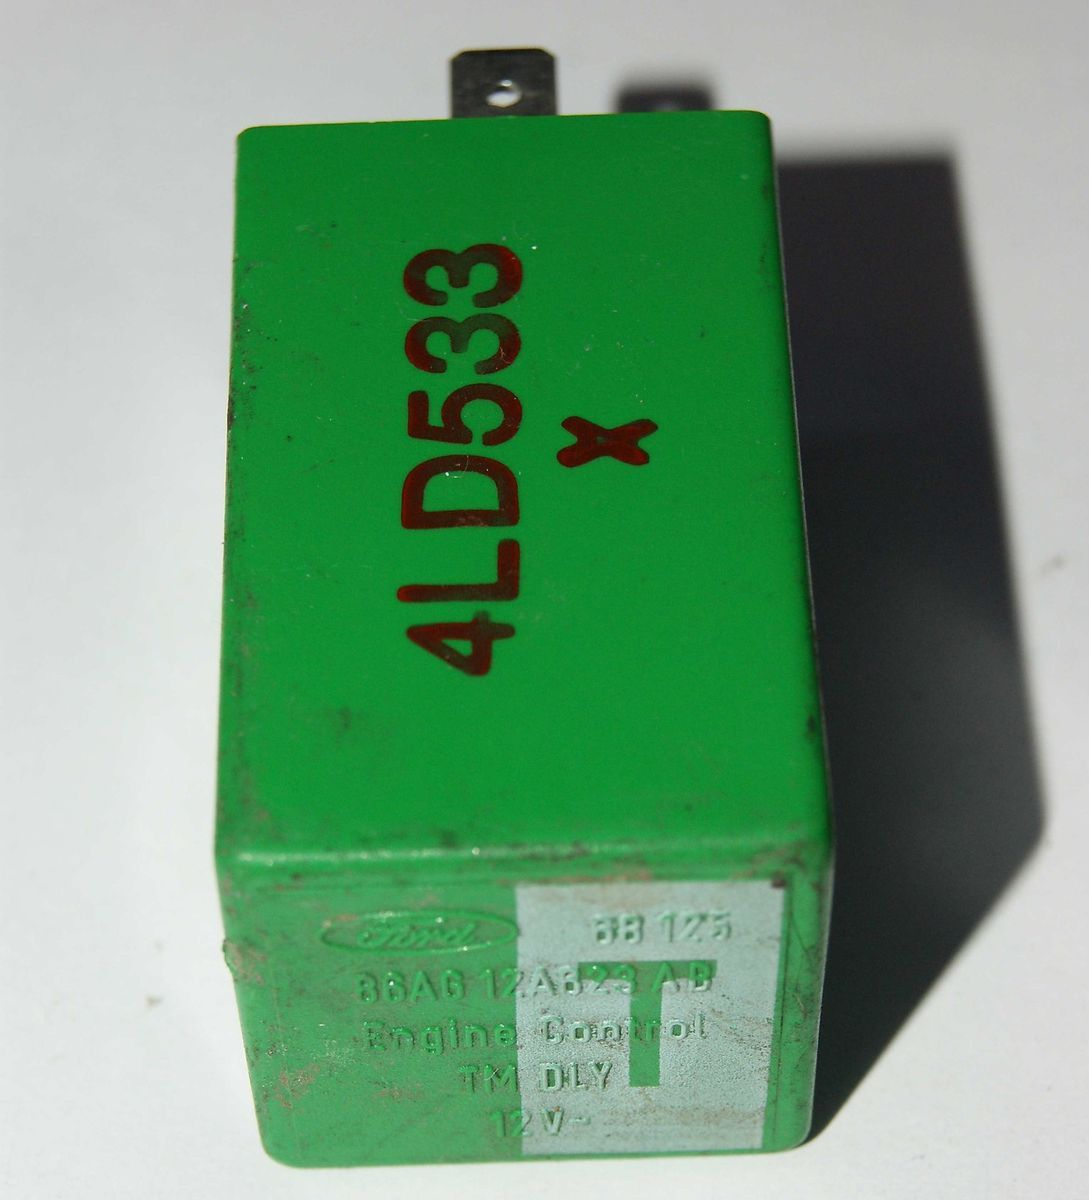 Relais Relay 12V FORD 86AG 12A623 AB Engine Control TM DLY